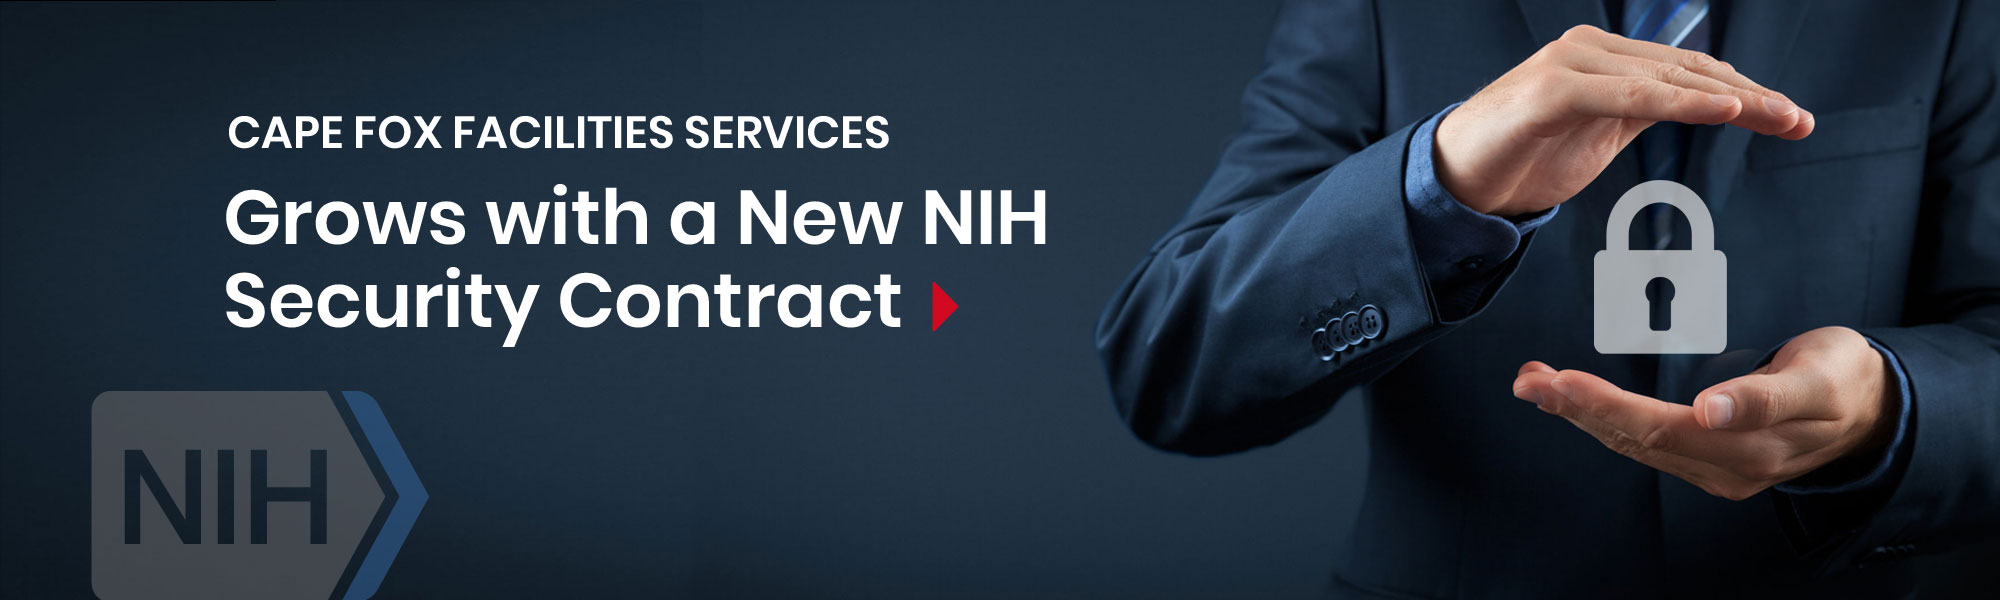 NIH Security Contract